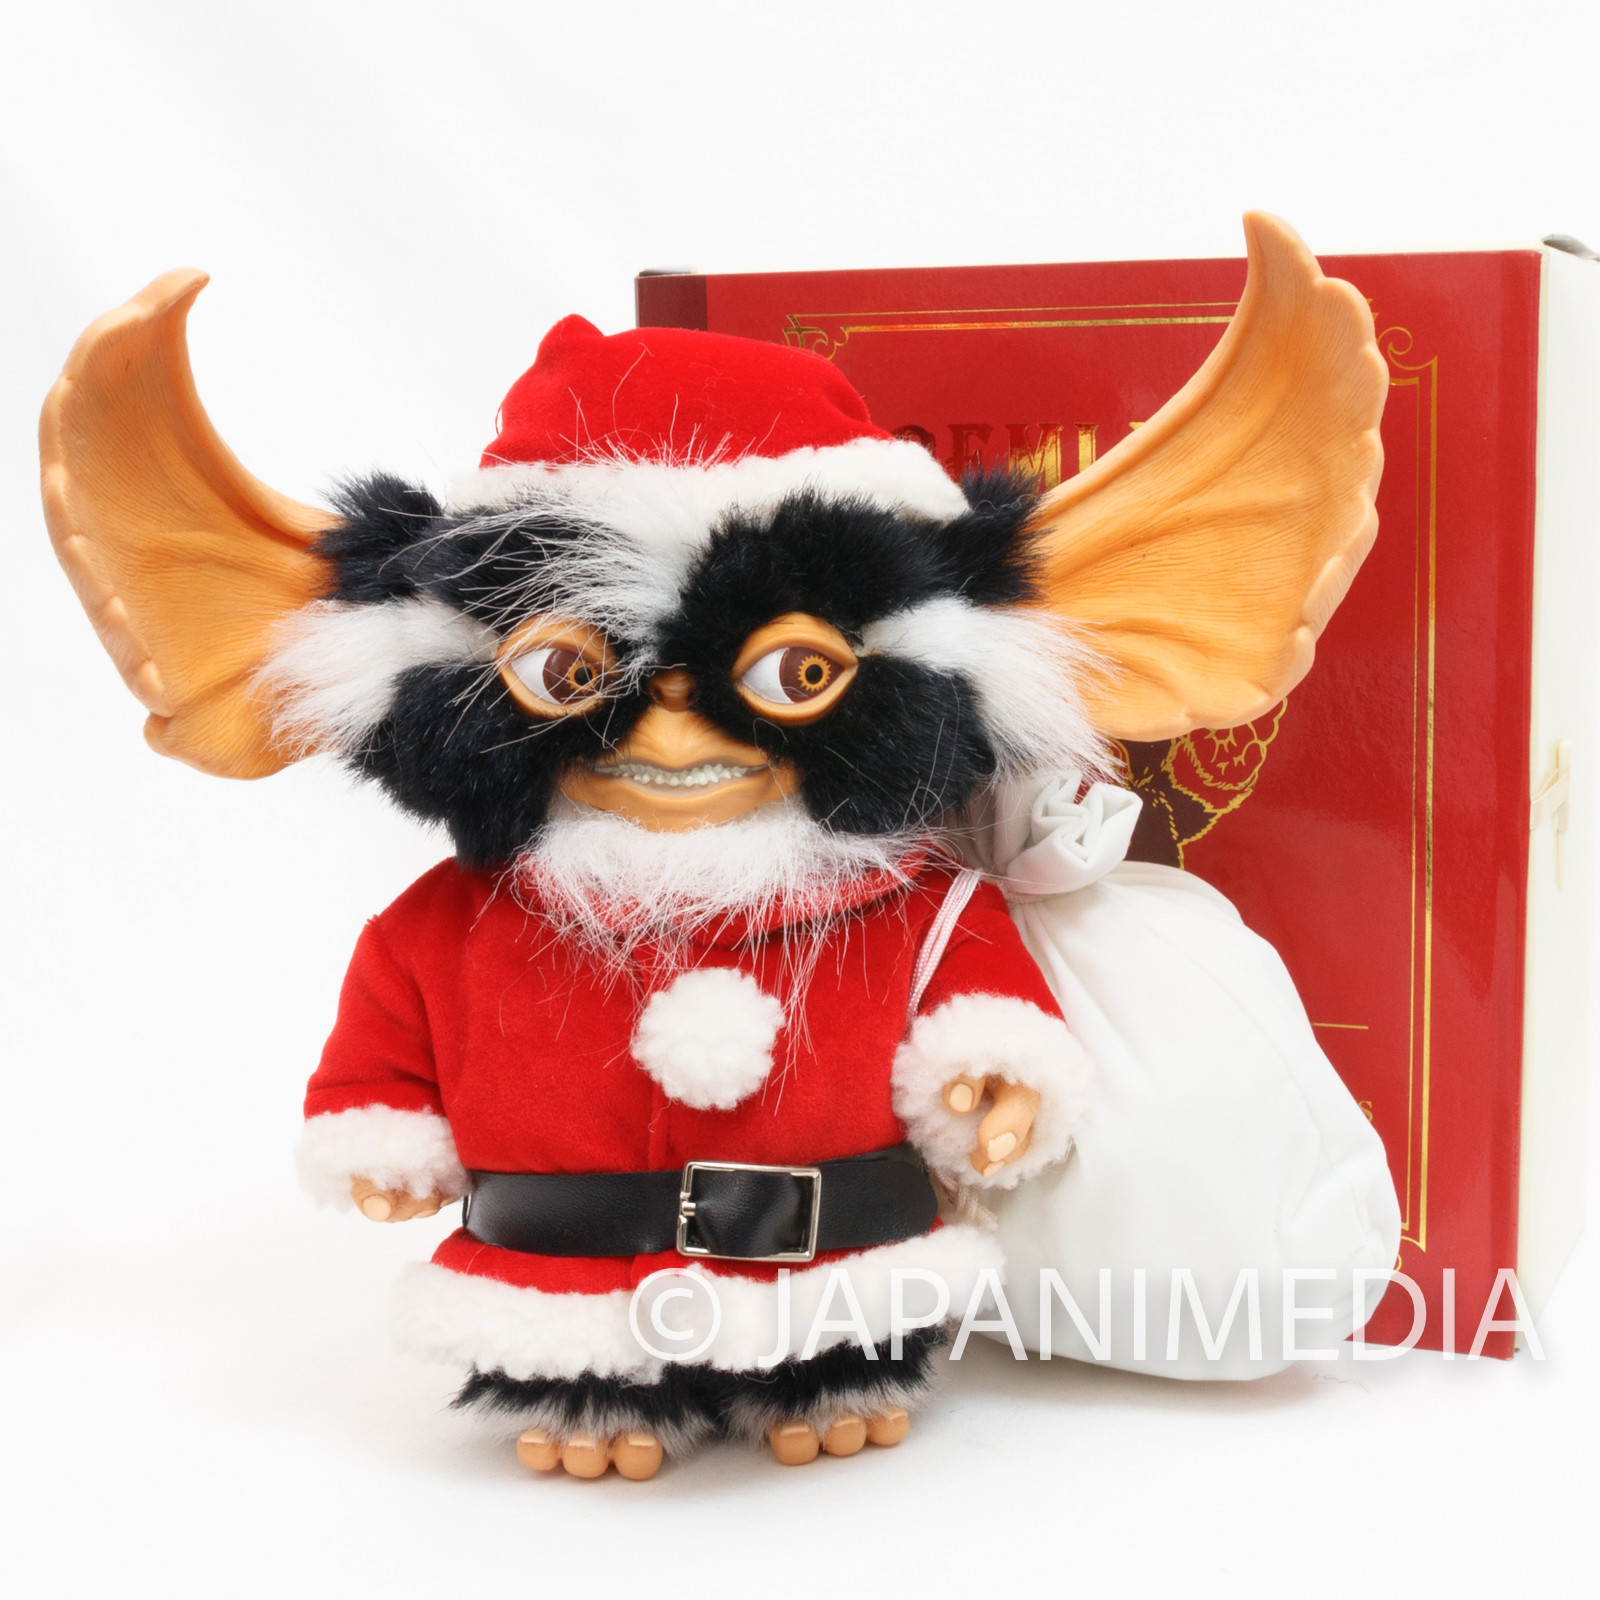 Gremlins 2 Jun Planning Collection Doll Mohawk Santa-Claus limited 2400